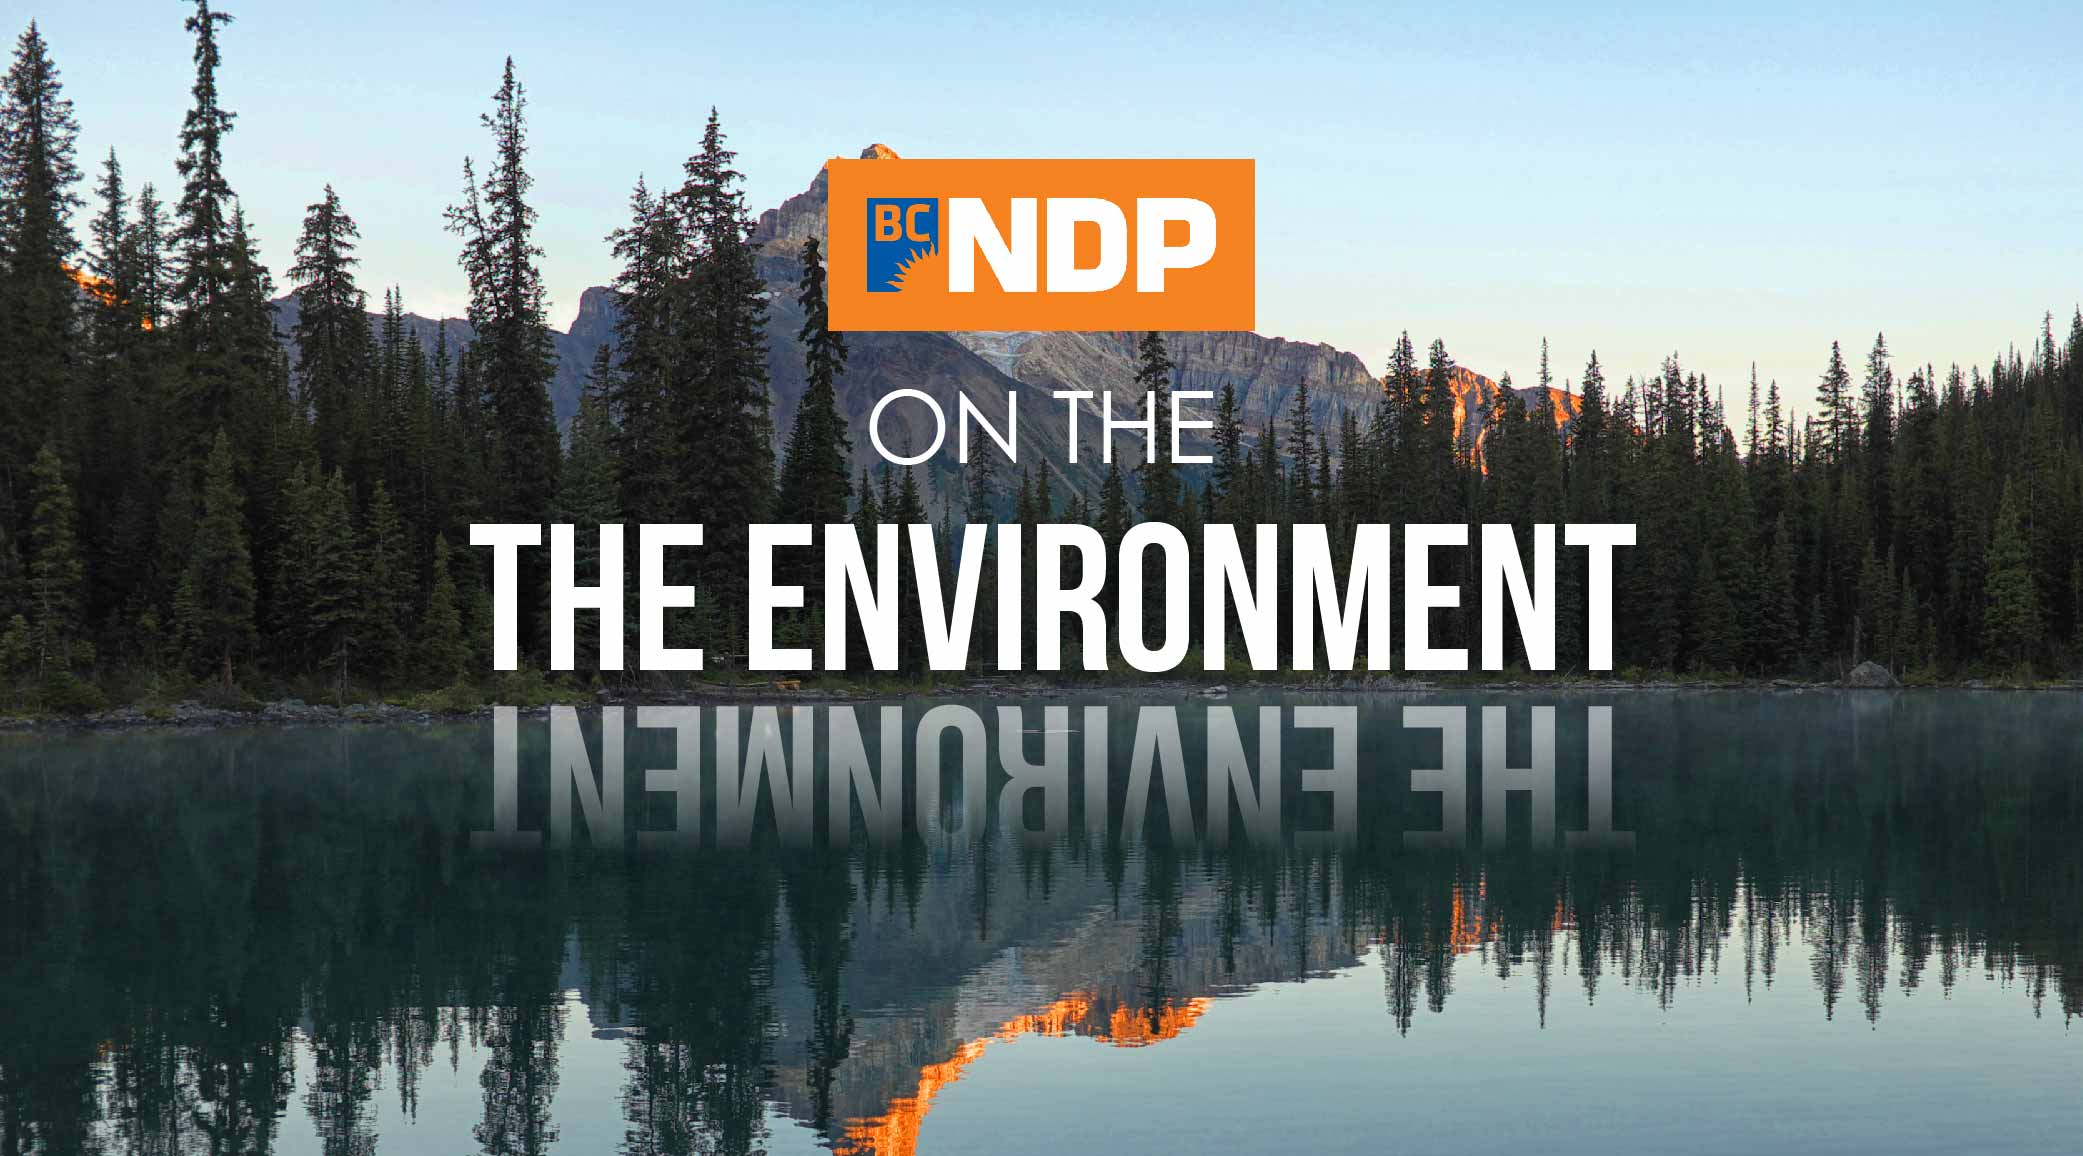 BC Election 2017: BC NDP and the environment in detail